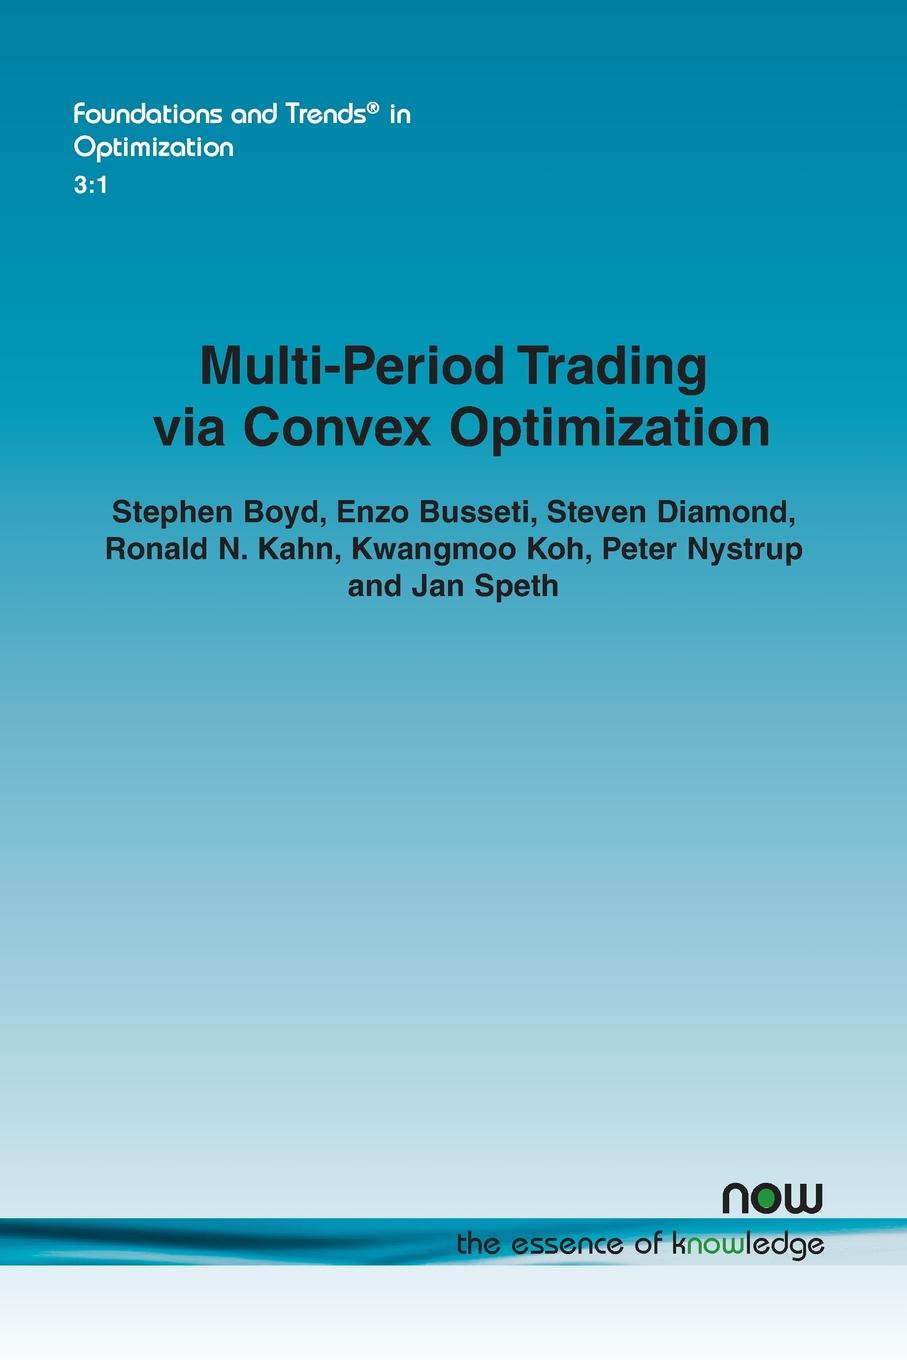 Stephen Boyd, Enzo Busseti, Steven Diamond Multi-Period Trading via Convex Optimization robert pardo the evaluation and optimization of trading strategies